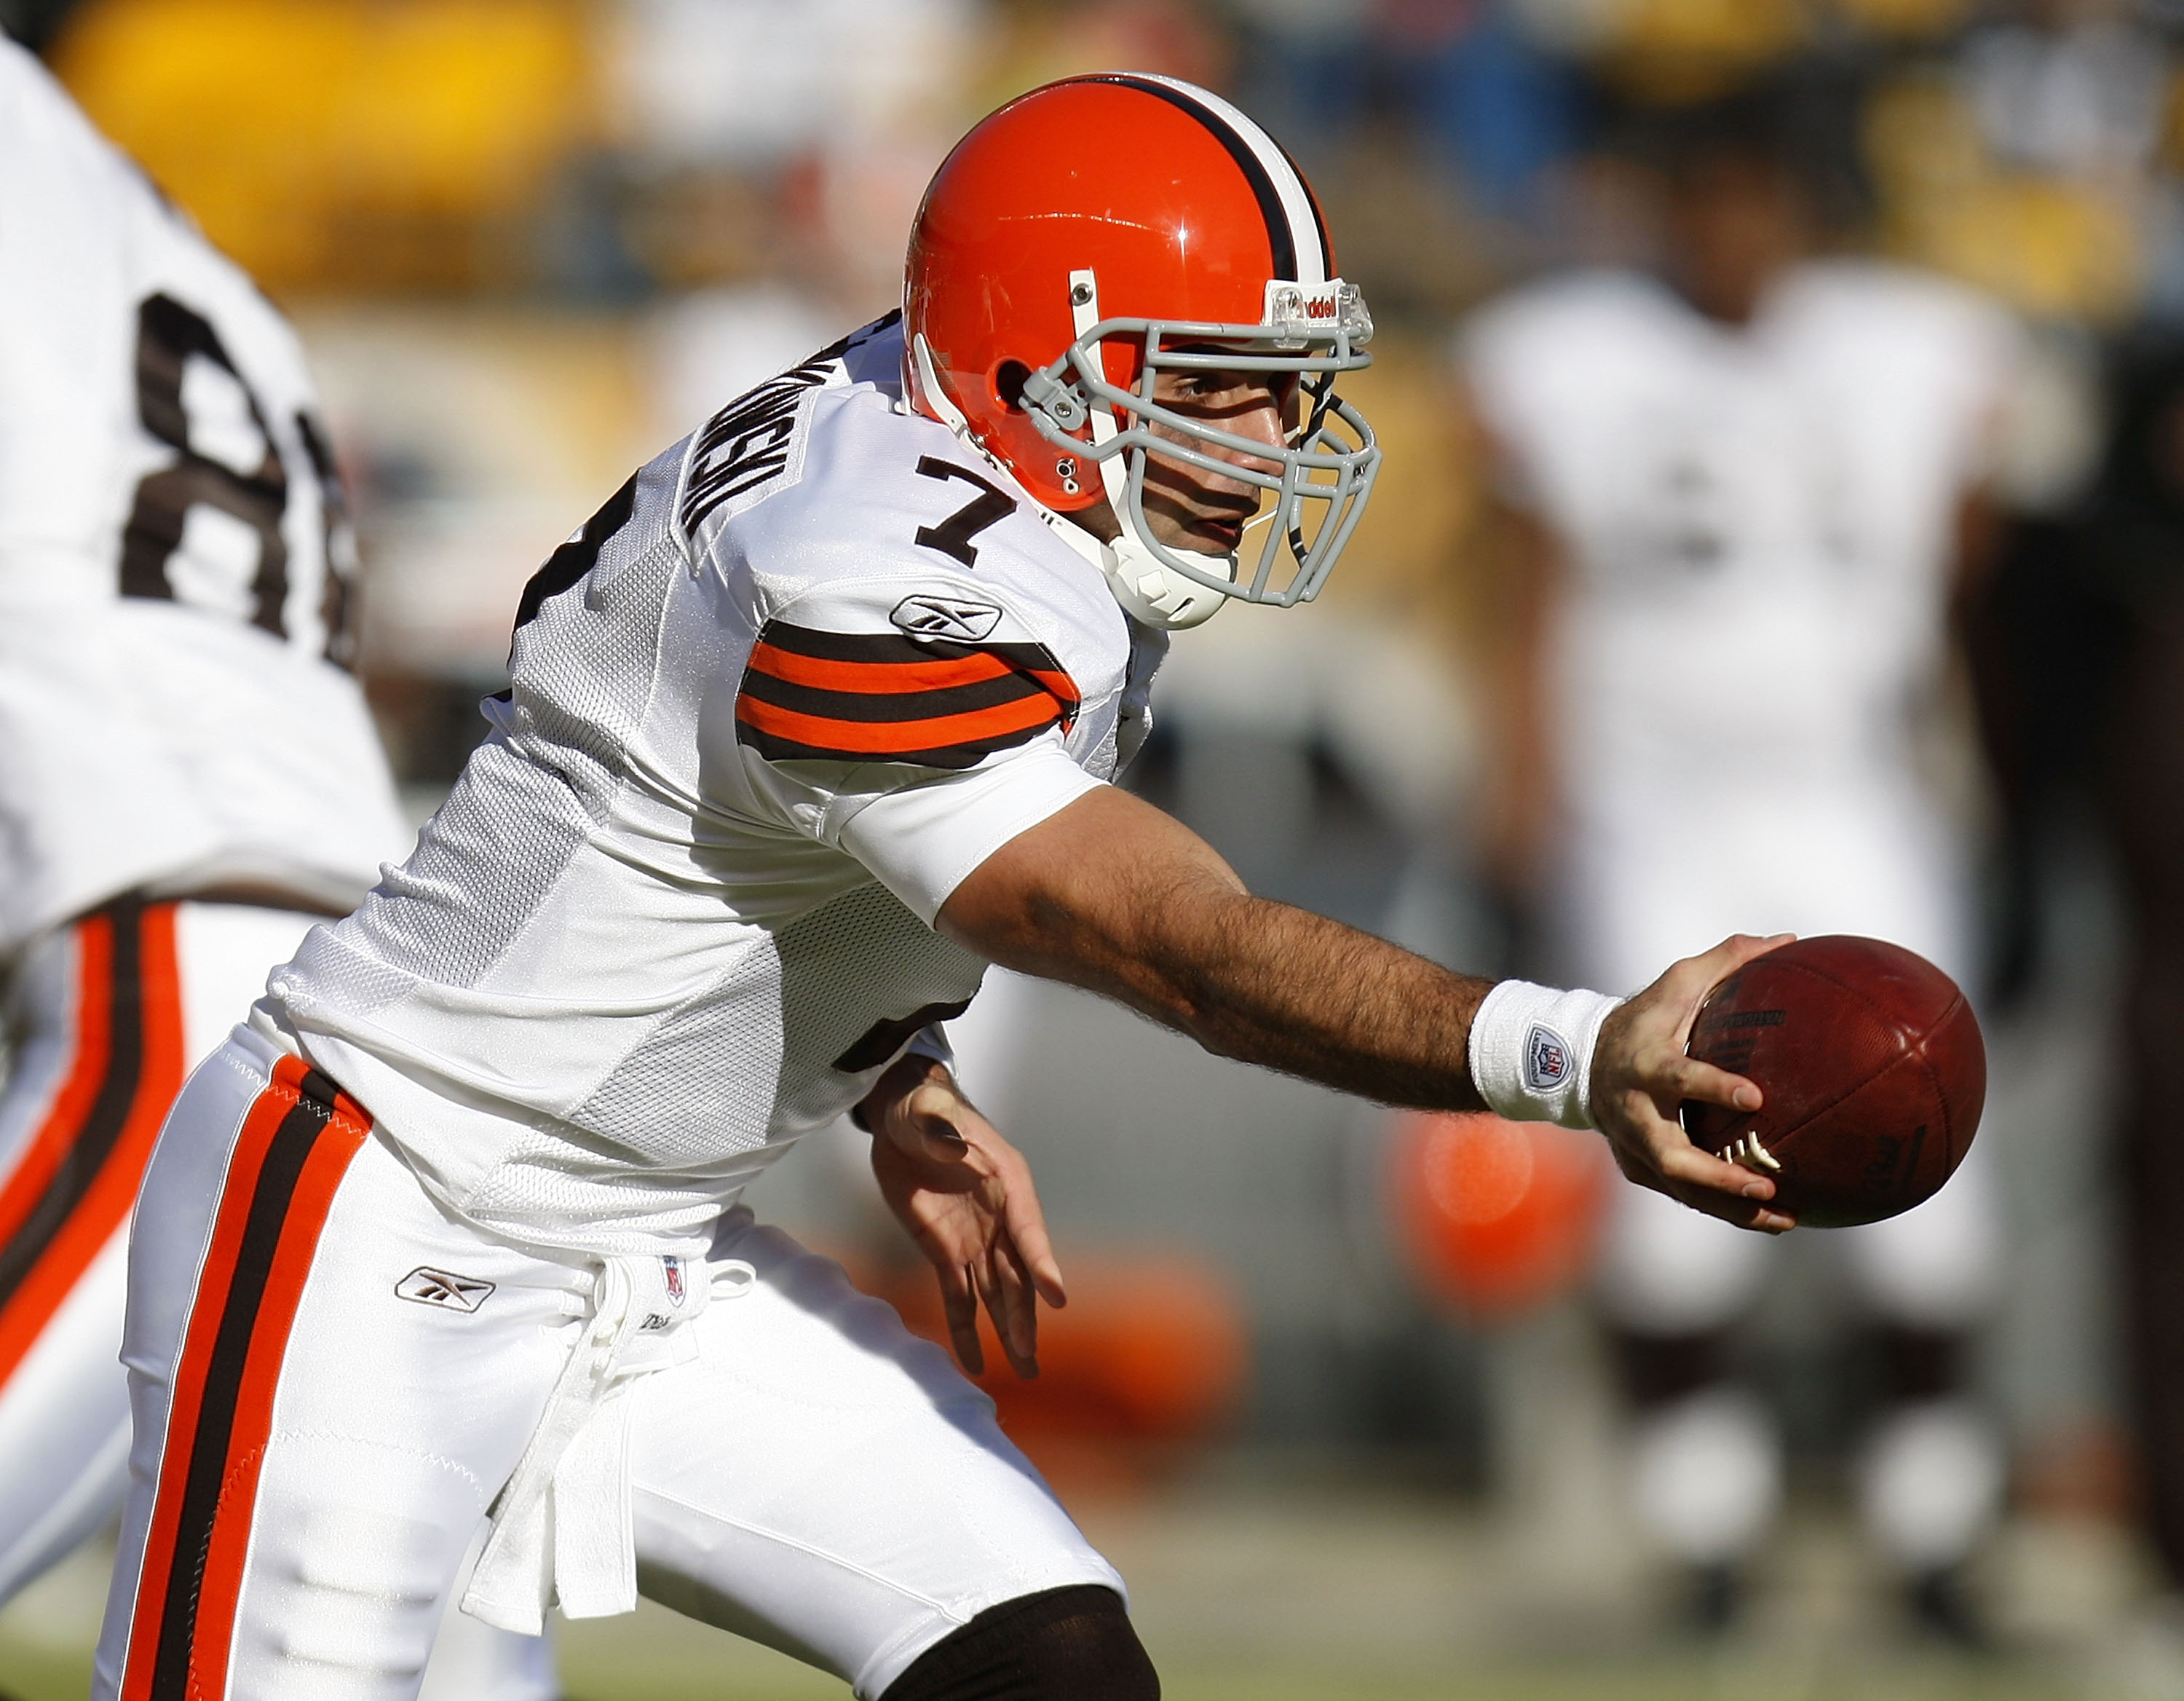 PITTSBURGH - DECEMBER 28: Bruce Gradkowski #7 of the Cleveland Browns gets ready to hand off in the first quarter while playing the Pittsburgh Steelers at Heinz Field December 28, 2008 in Pittsburgh, Pennsylvania. (Photo by Gregory Shamus/Getty Images)